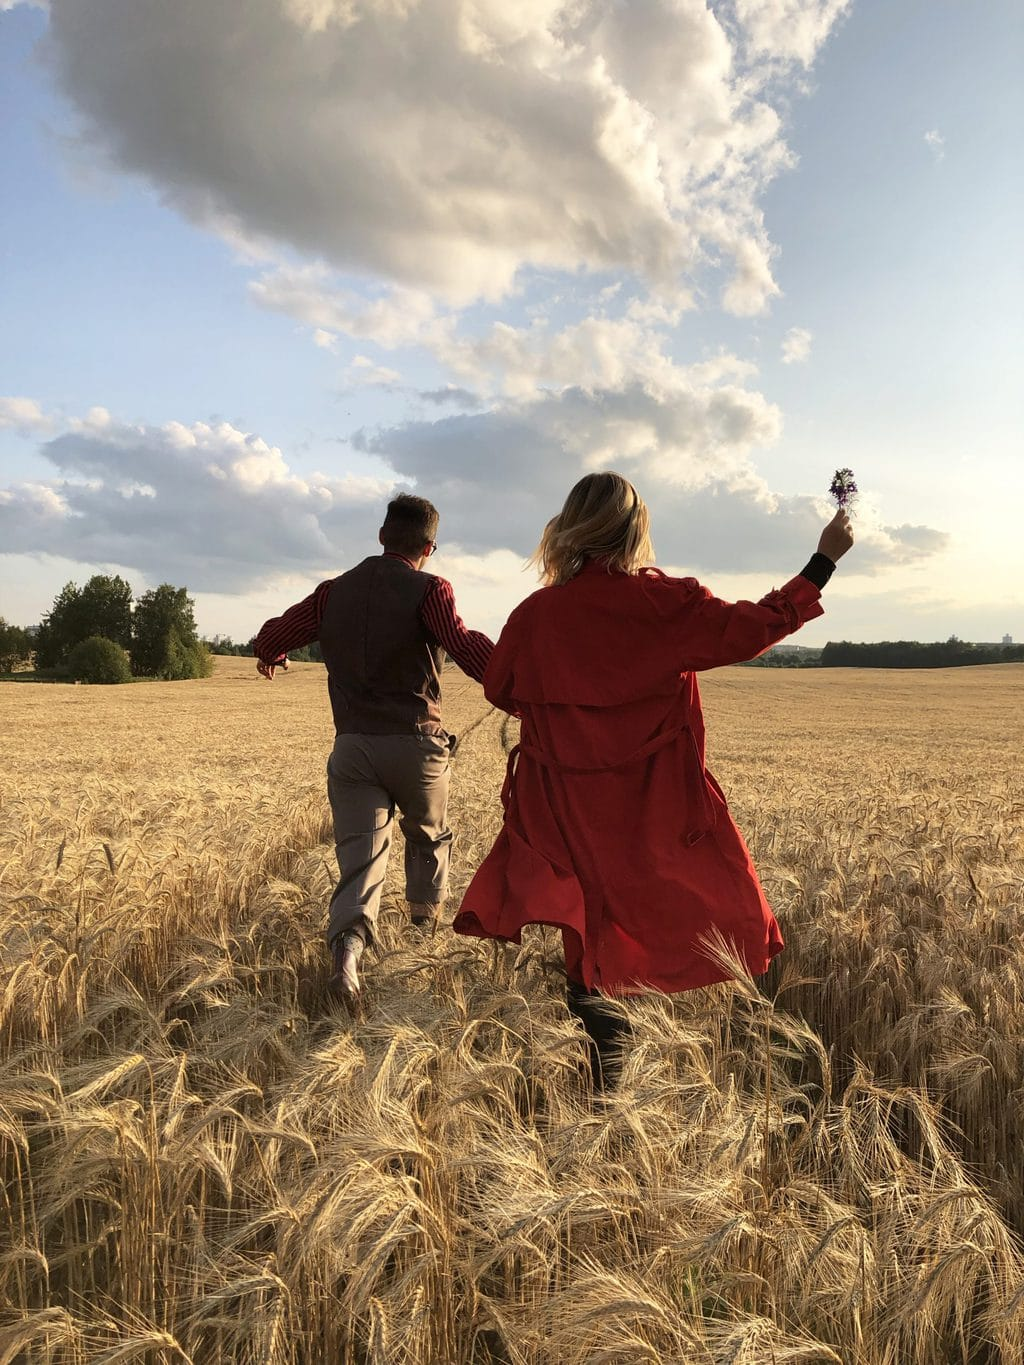 at home date ideas couple running into field source: maksgelatin from Pexels